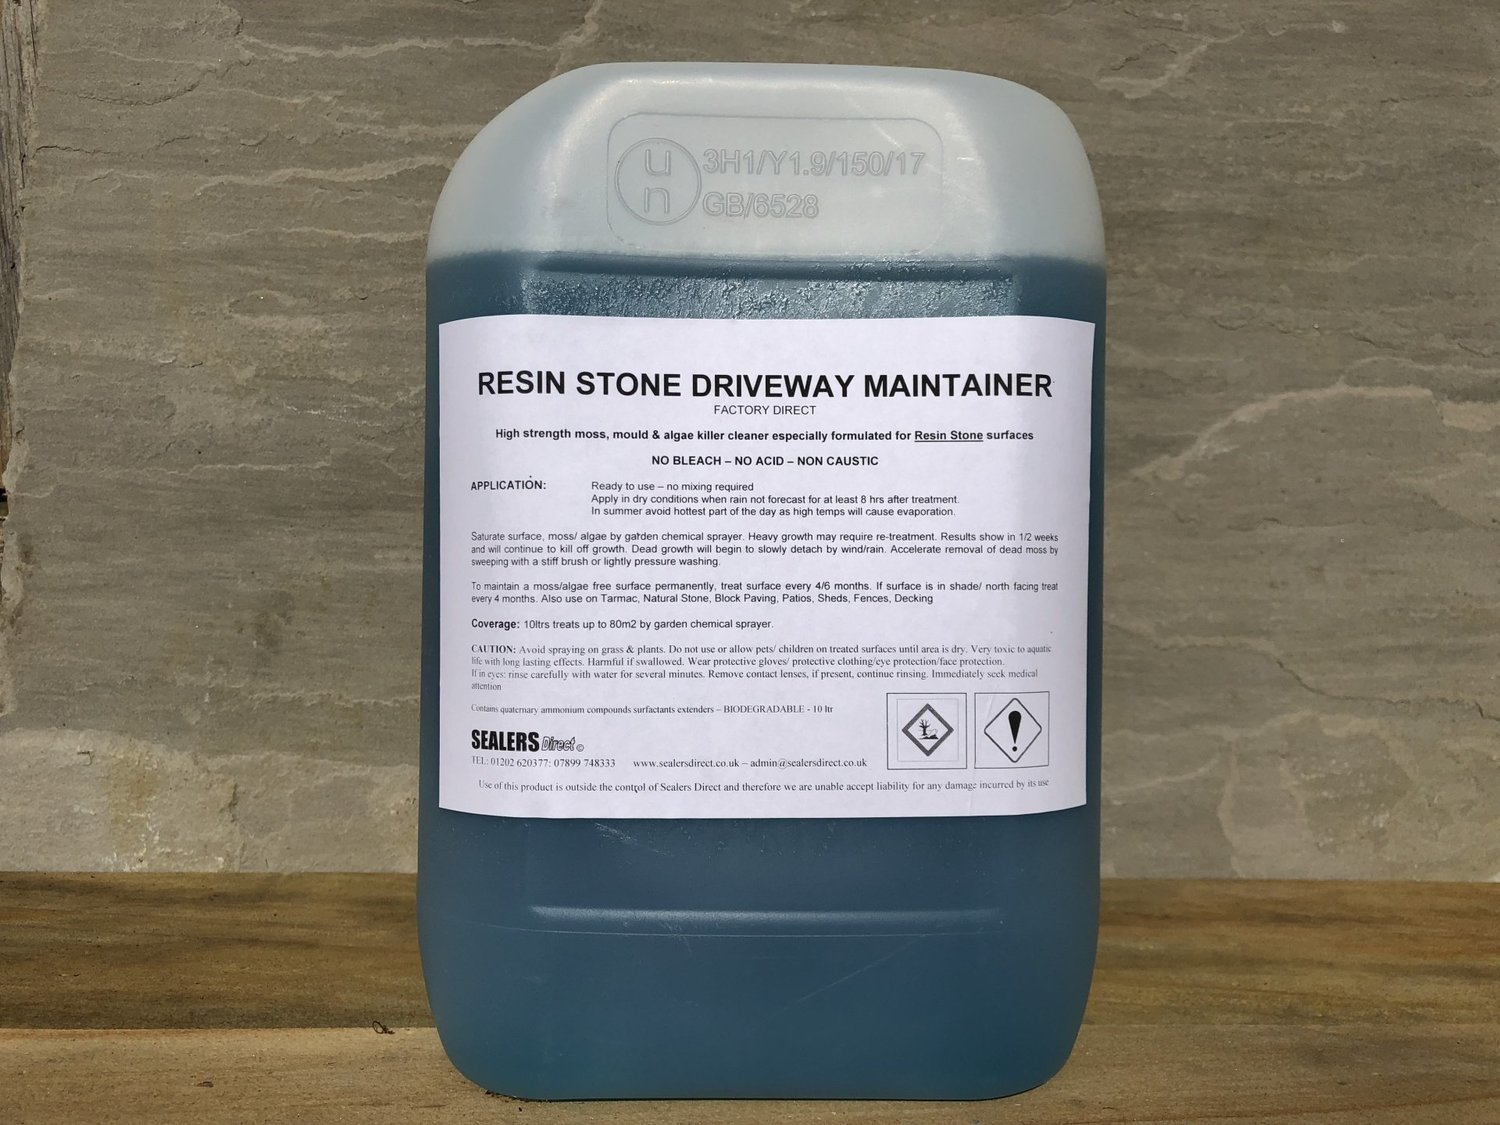 Resin Stone Driveway Maintainer